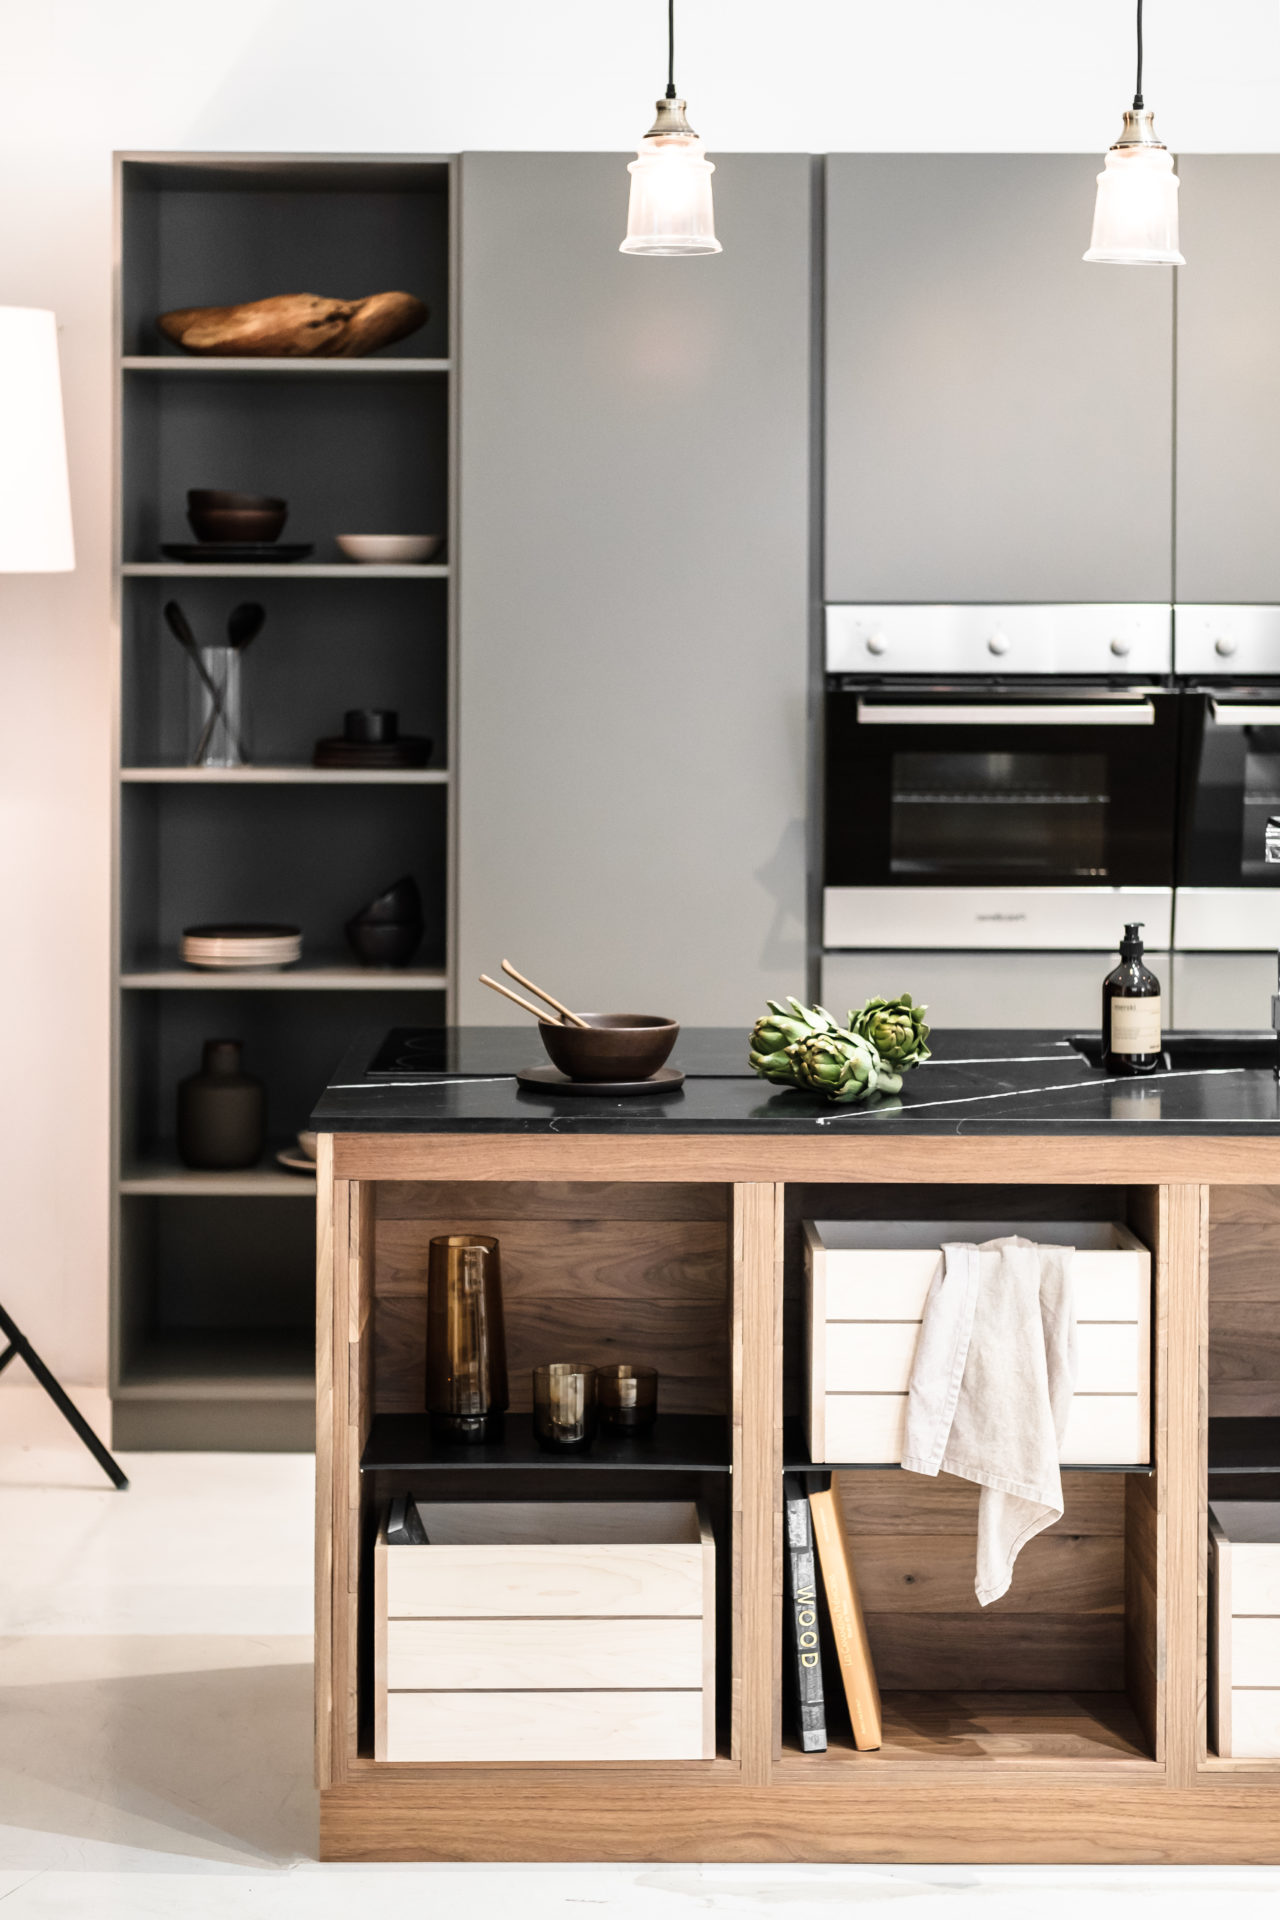 kitchen design - The vogue kitchen by KITMO